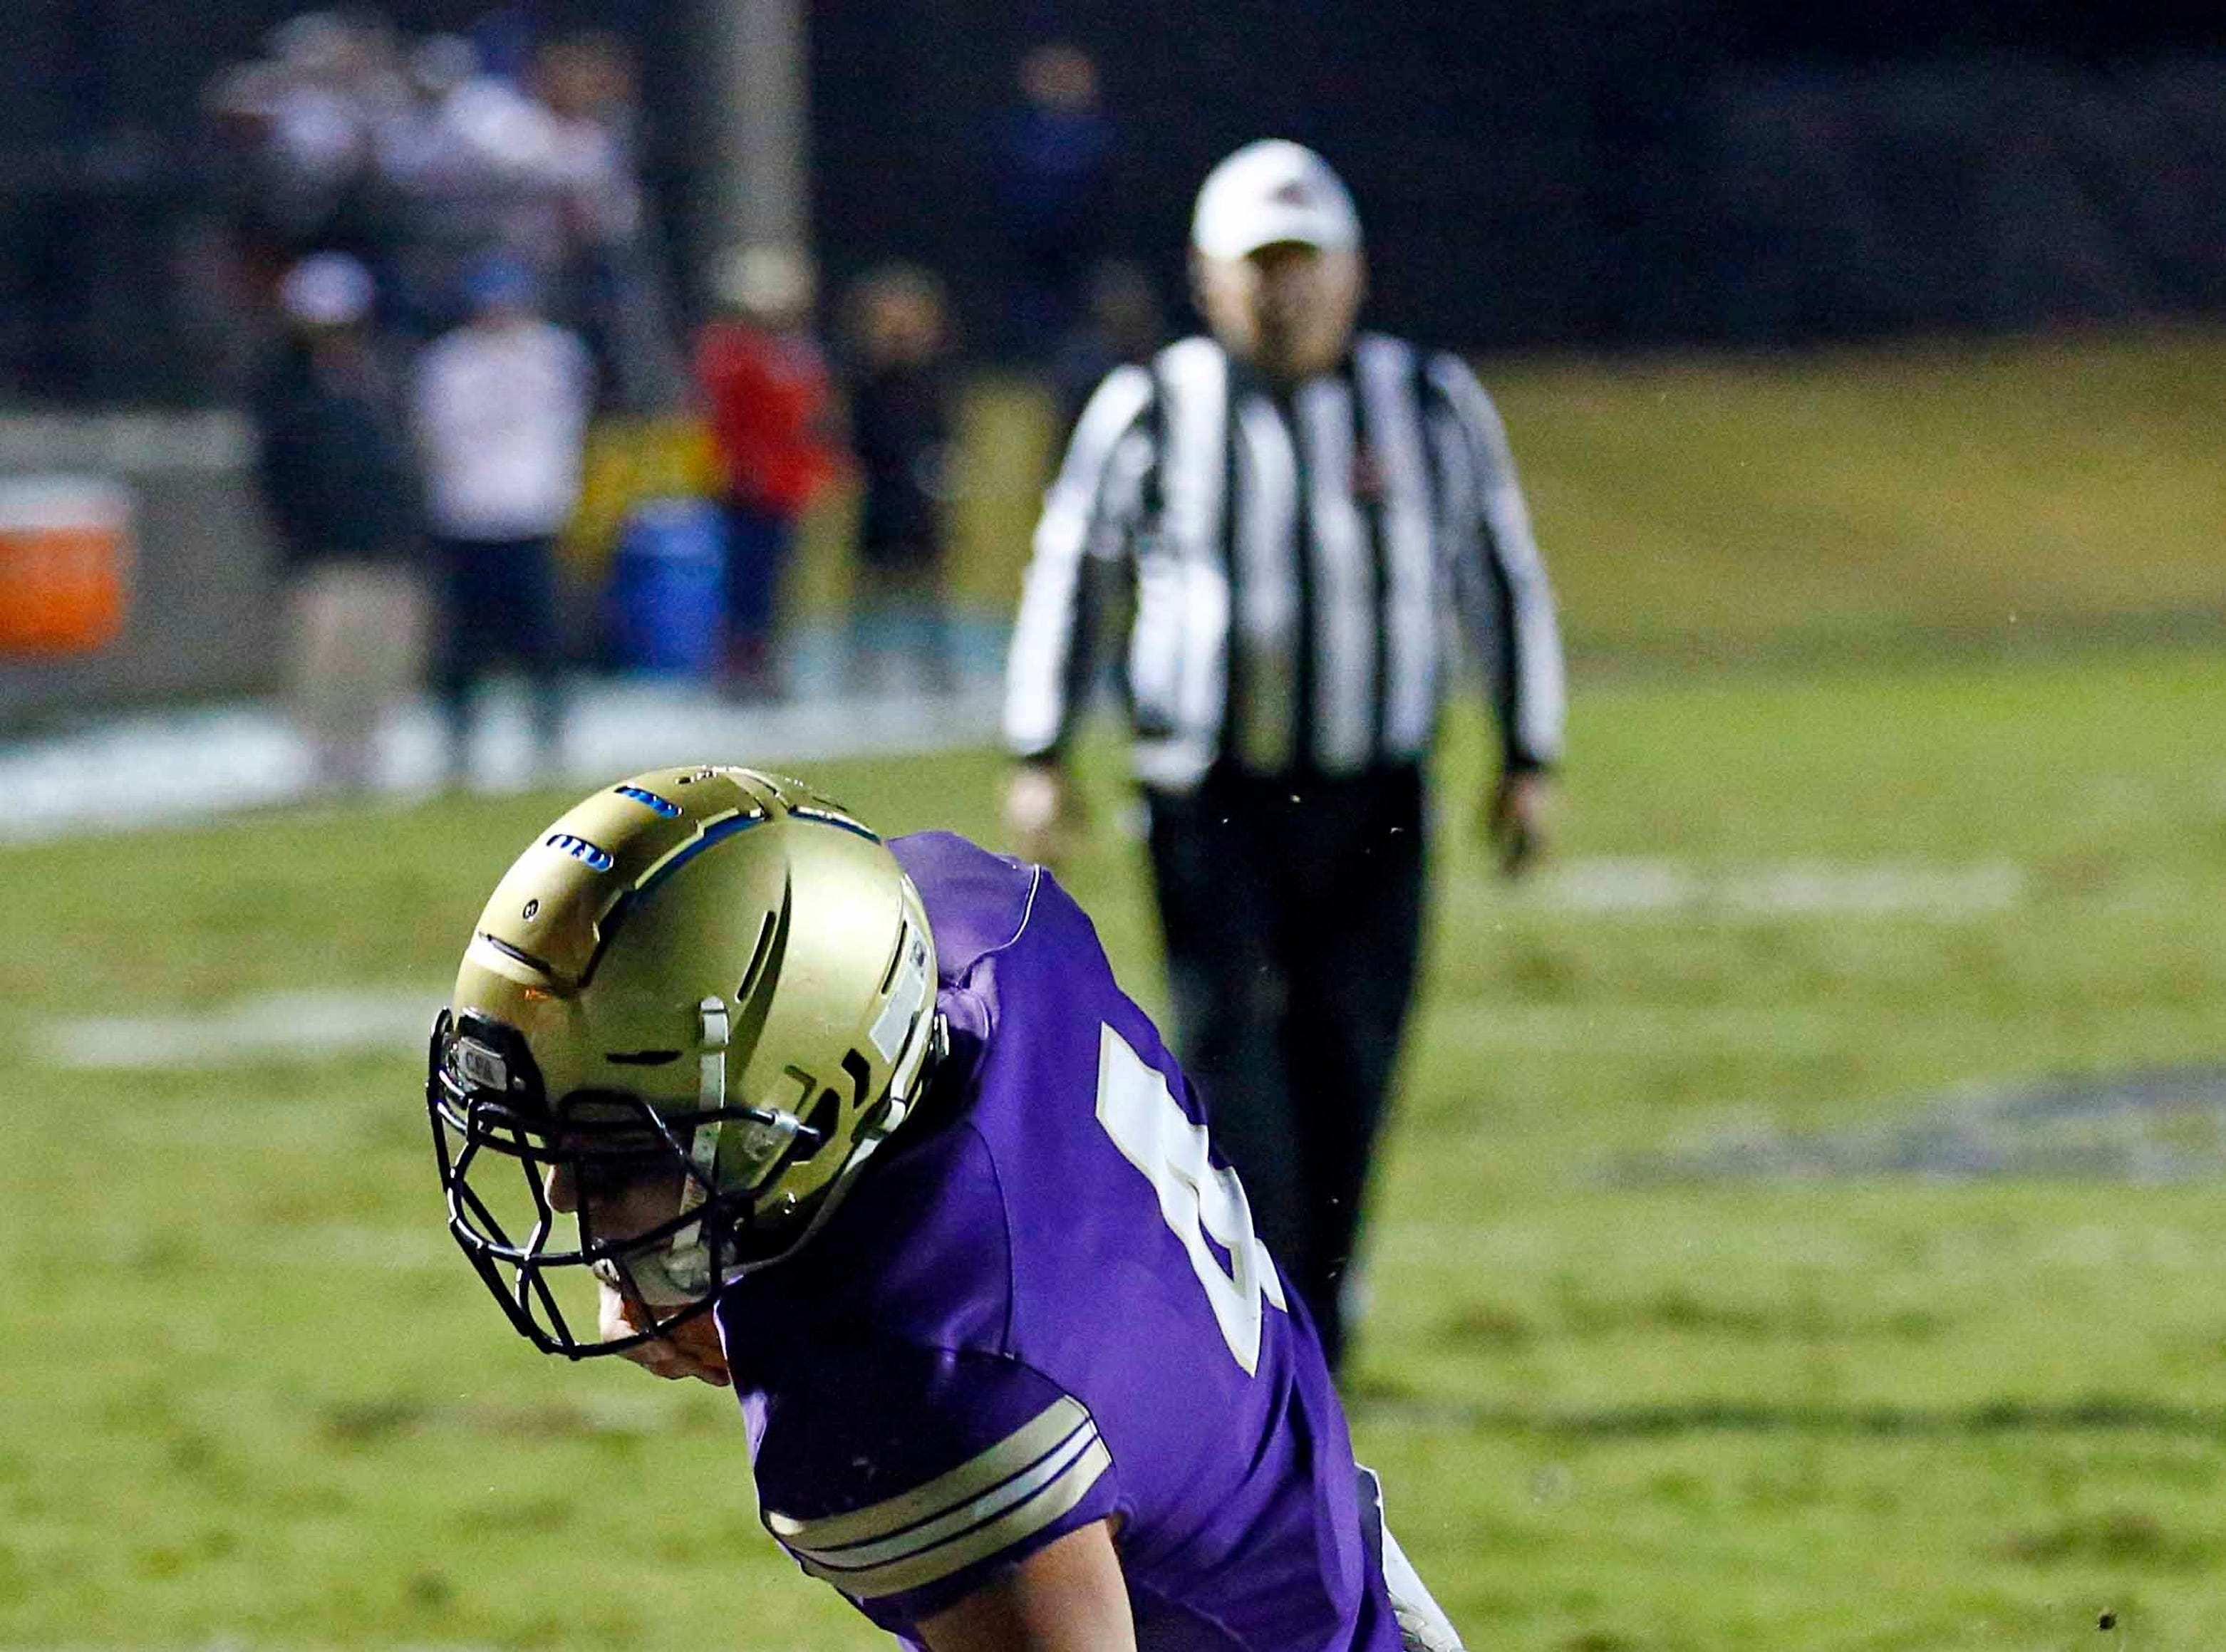 CPA's Kane Patterson scores as he's hit by USJ's Cater Craig during their game Friday, Nov. 2, 2018, in Nashville, Tenn.